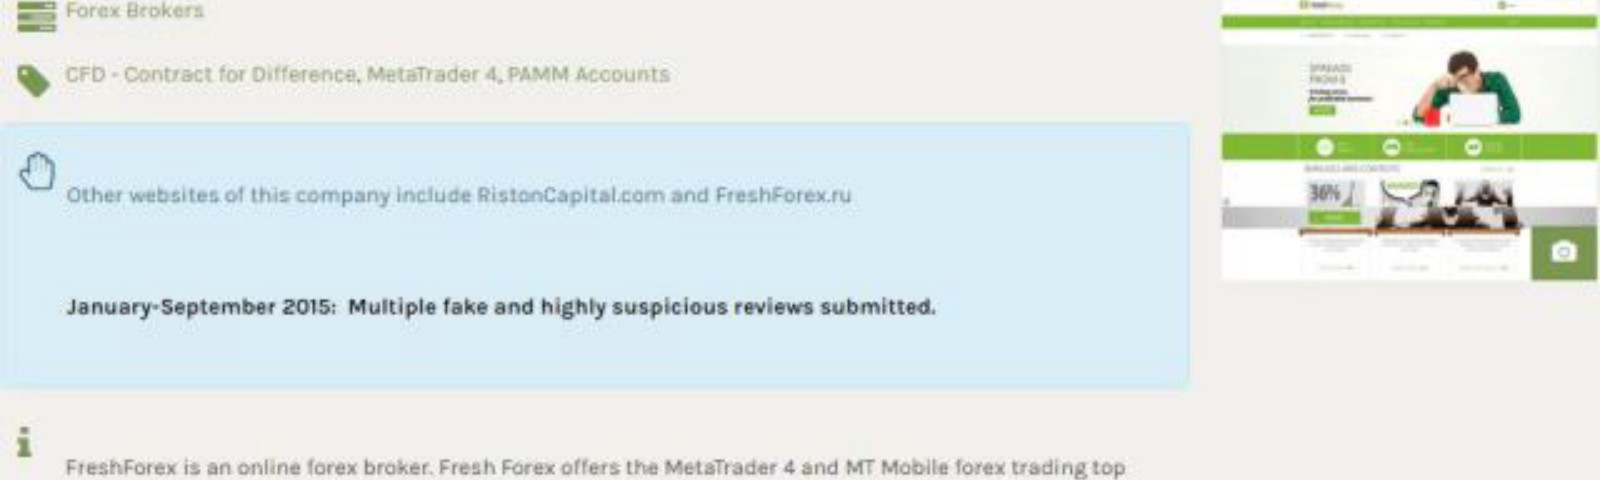 freshforex review